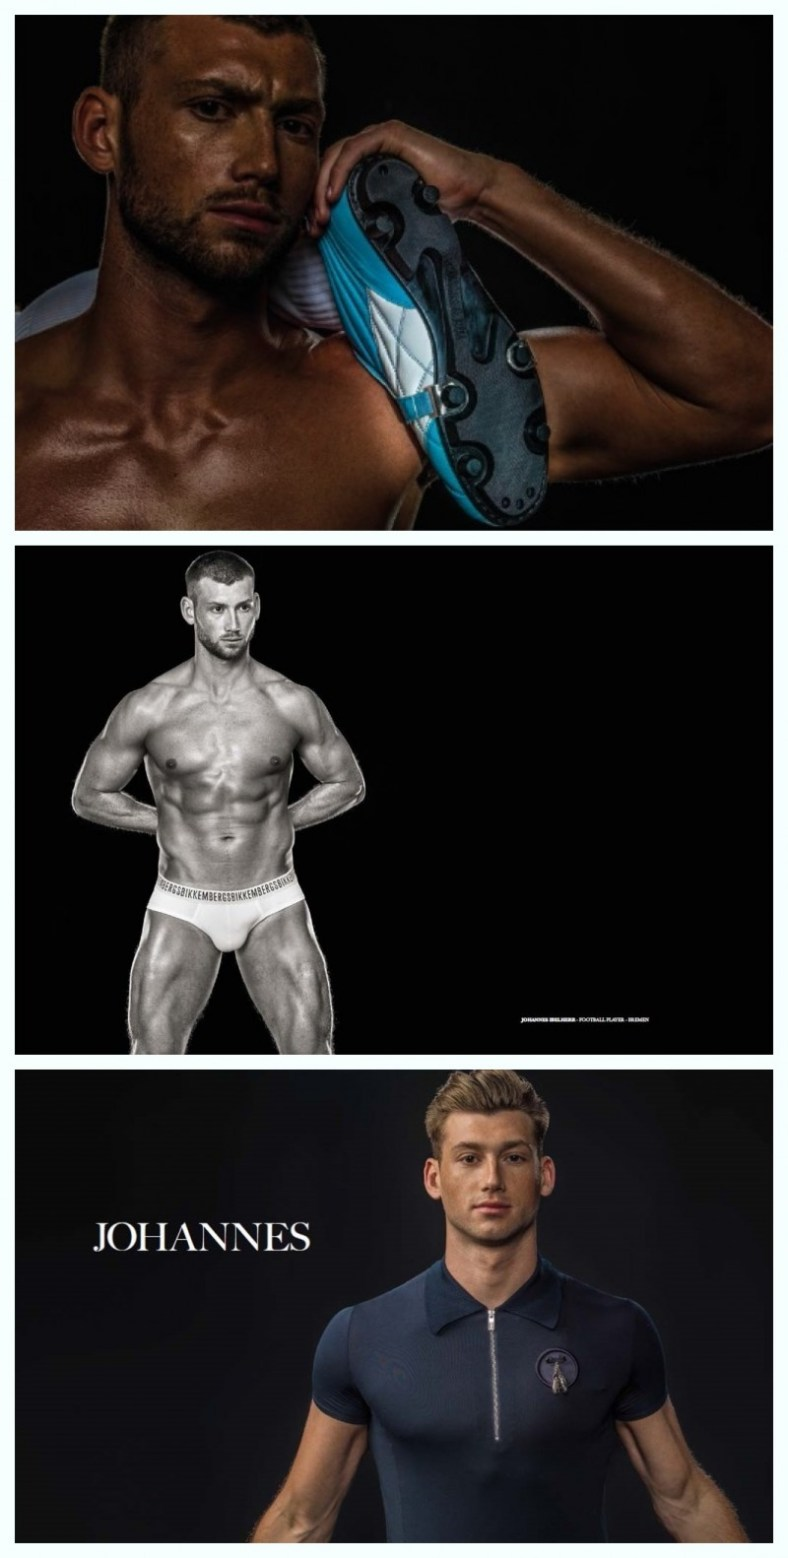 MCFIT MODELS FEATURED IN 'DIRK BIKKEMBERGS: 25 YEARS OF ATHLETES AND FASHION'